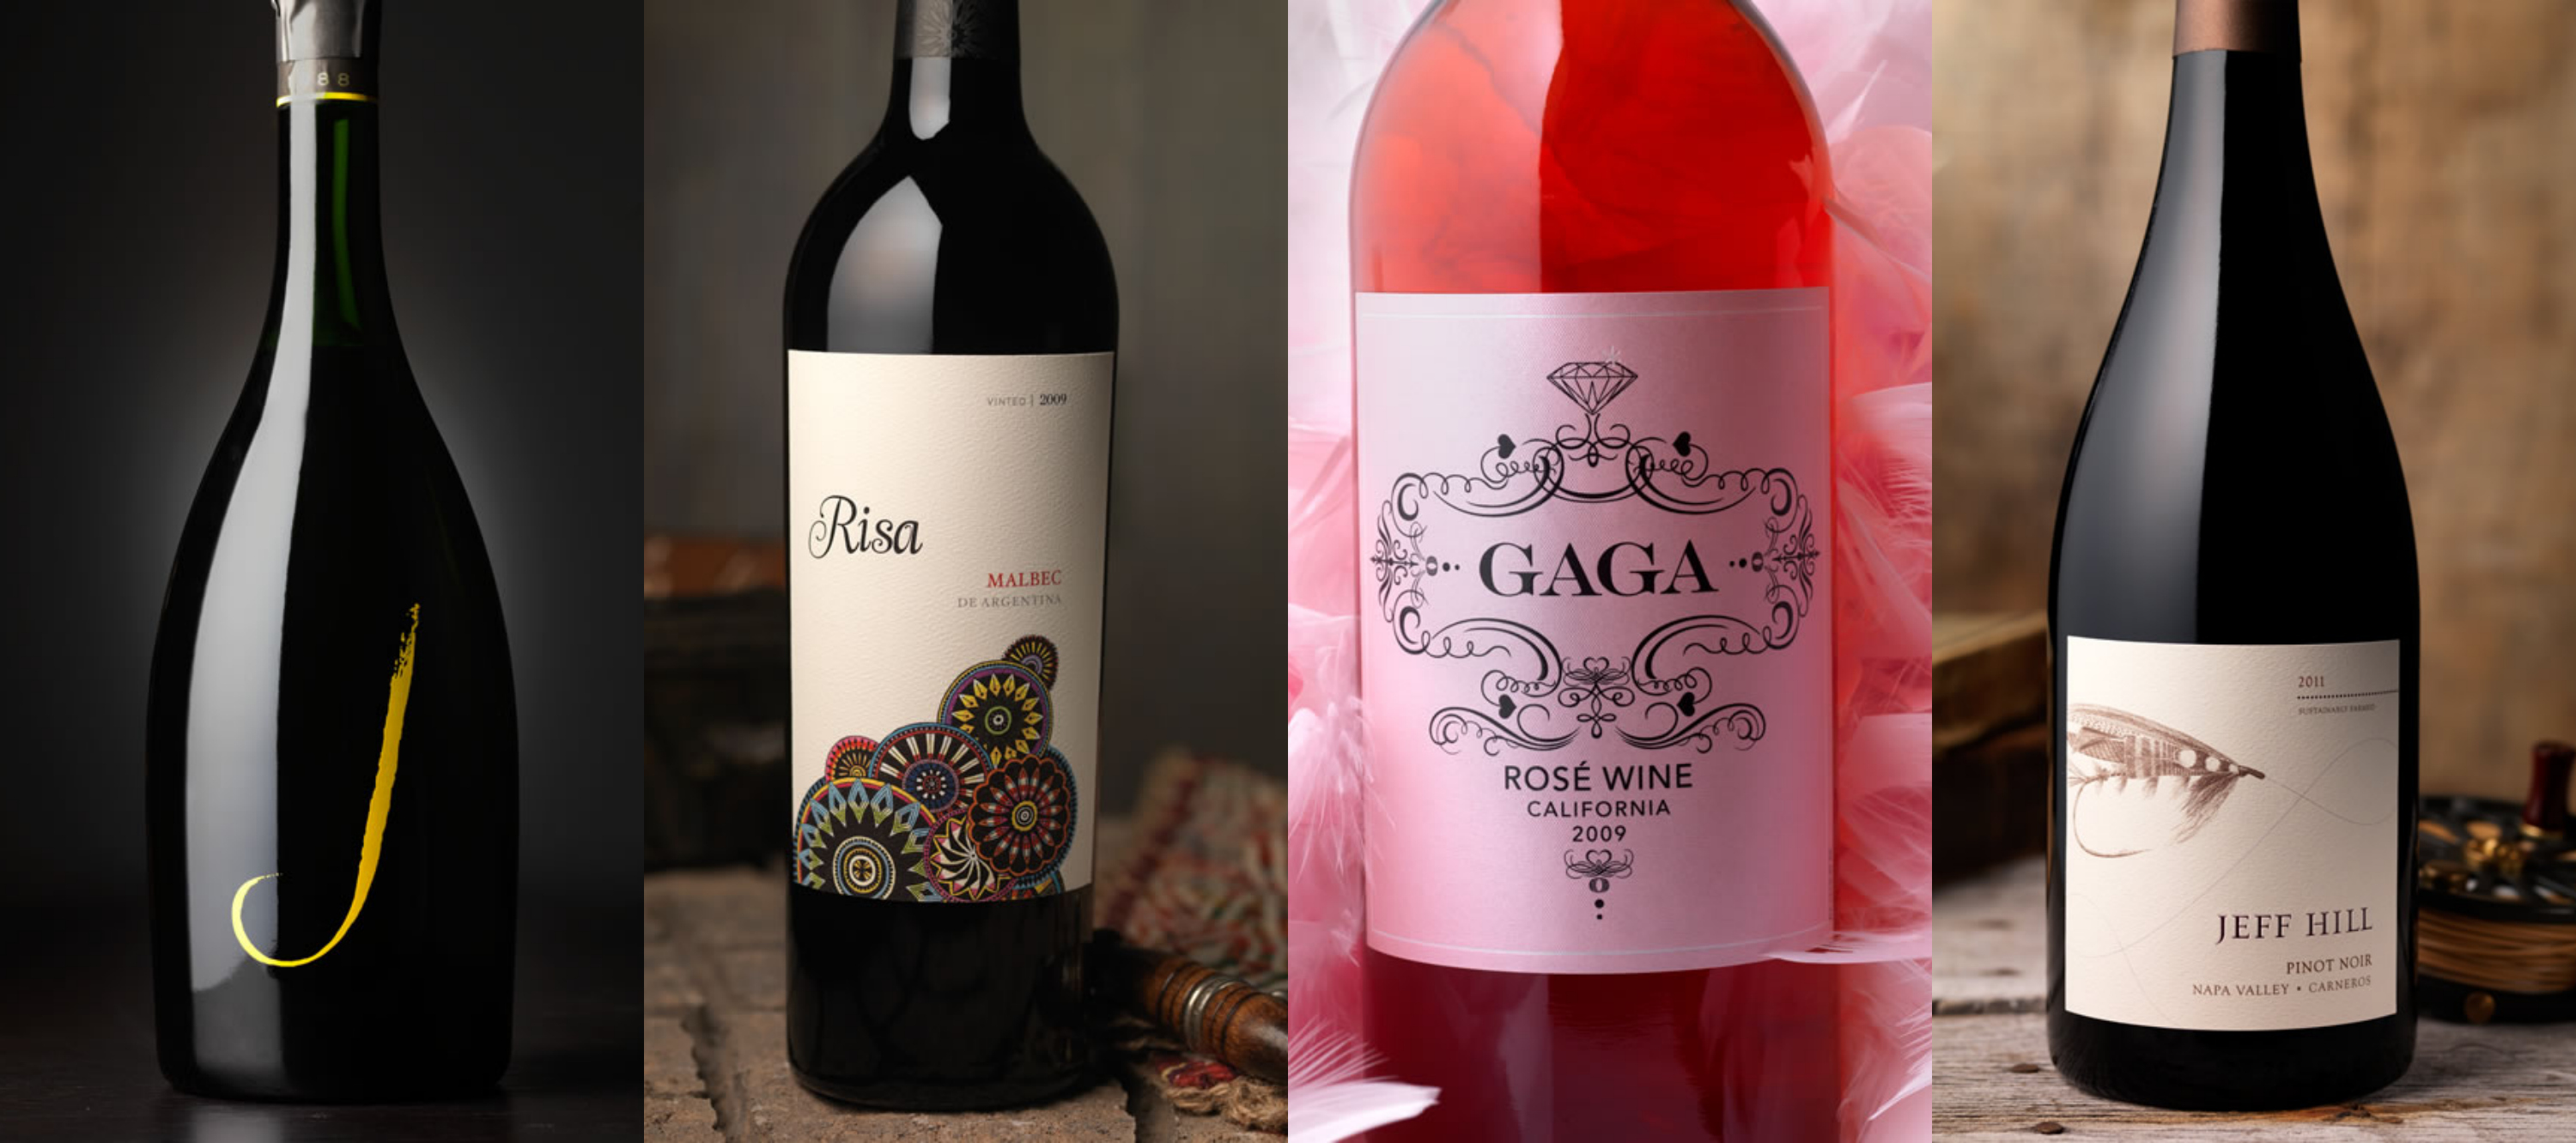 Best Wine Label Design Ideas download microsoft word cover page ...